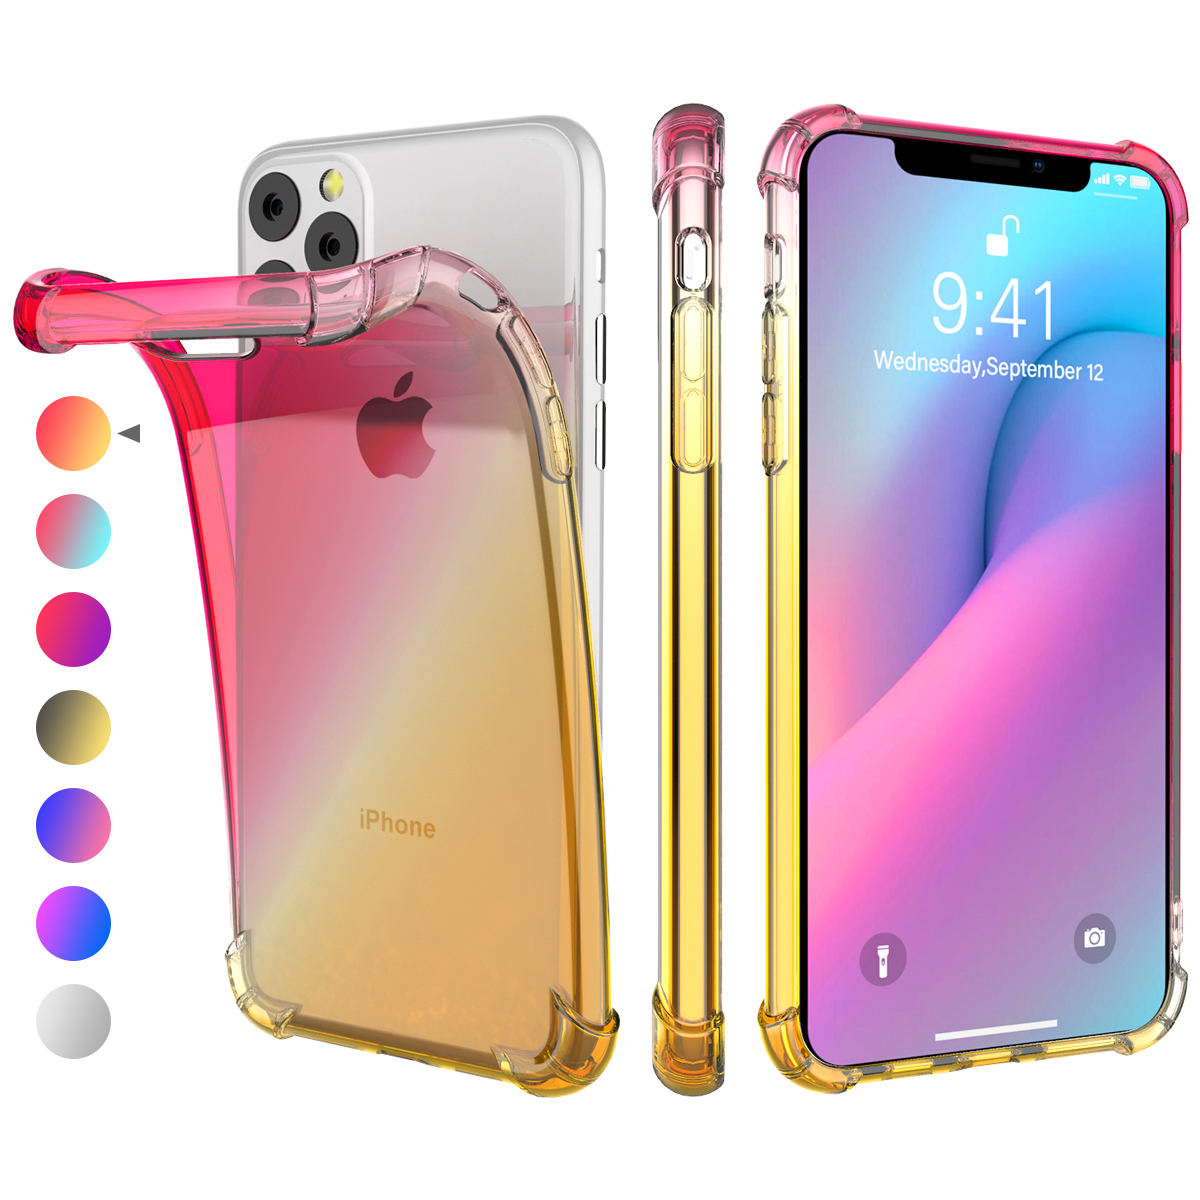 Gradient Soft TPU Case for iPhone 11/11 Pro/11 Pro Max 42